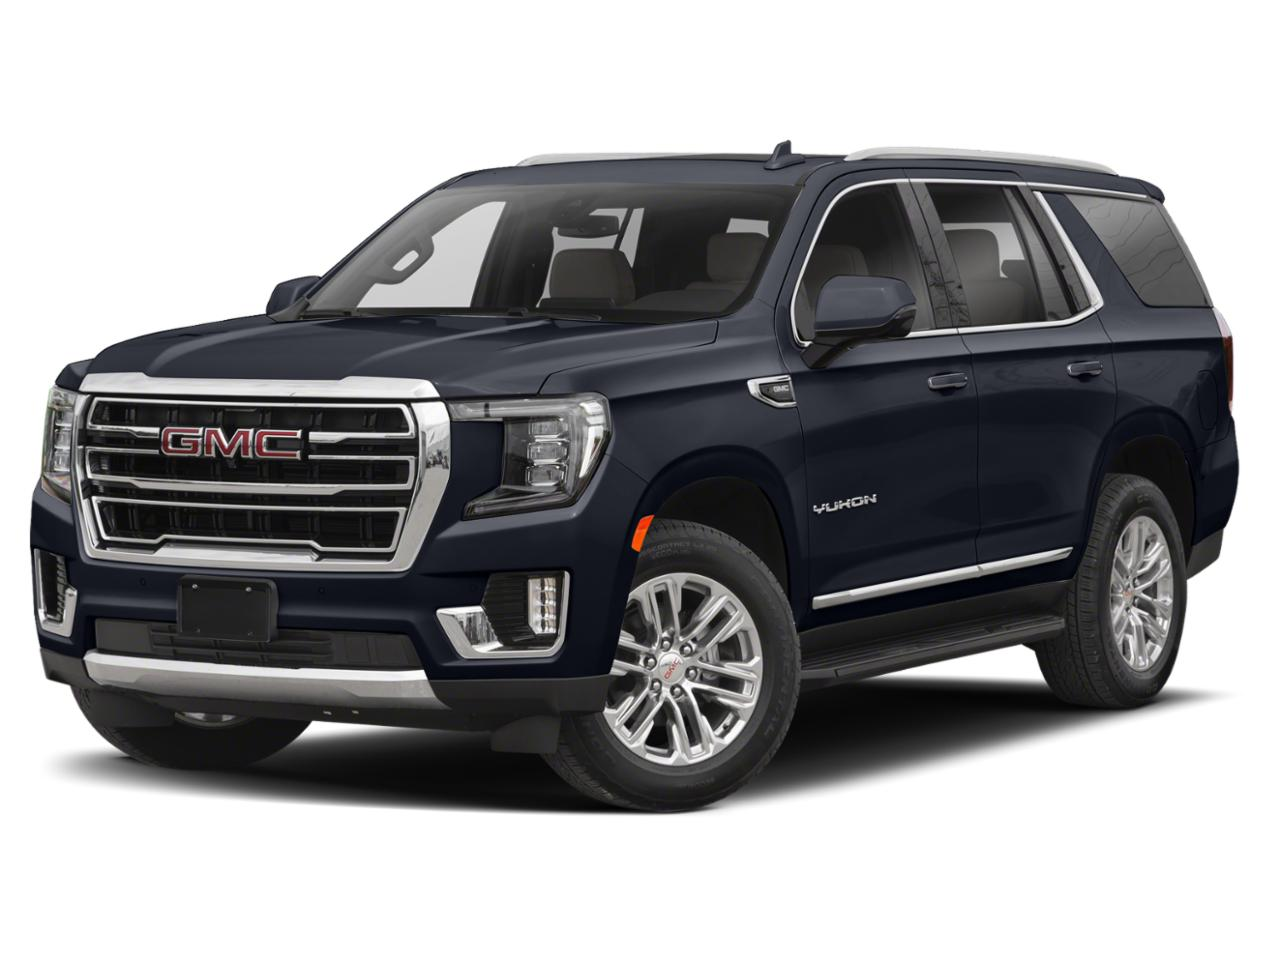 2021 GMC Yukon Vehicle Photo in Dallas, TX 75209